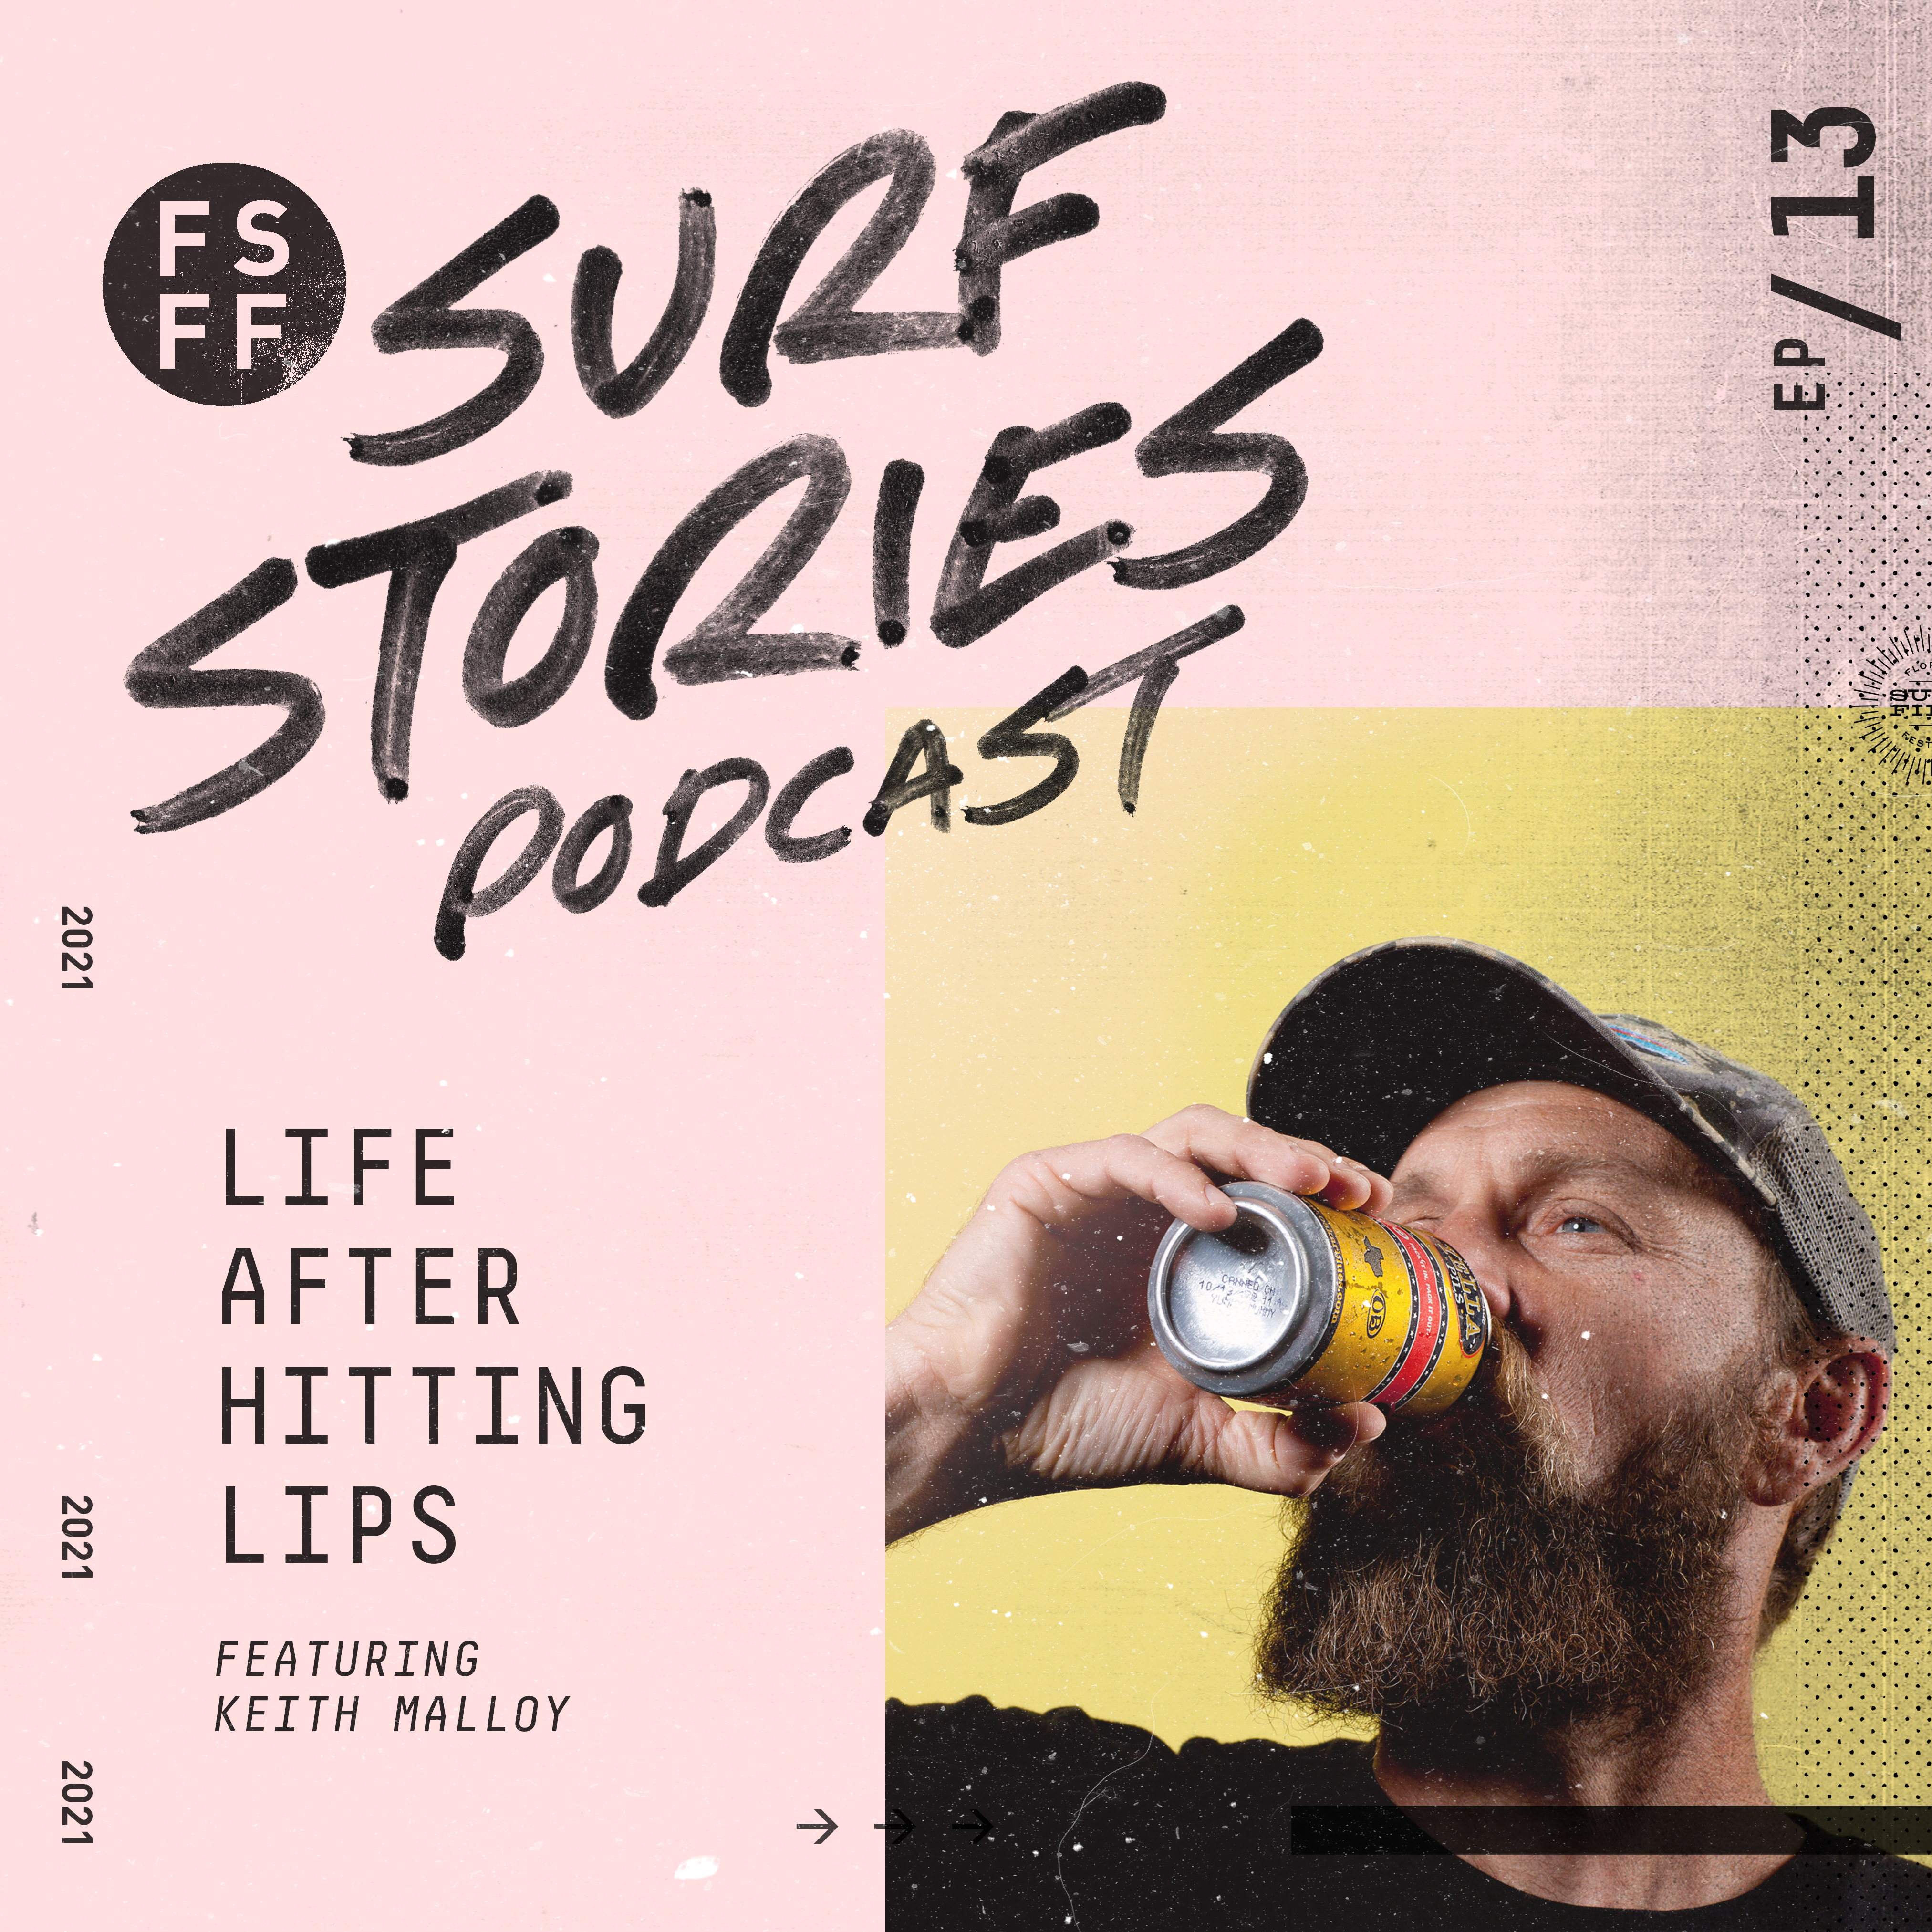 Life After Hitting Lips with Keith Malloy